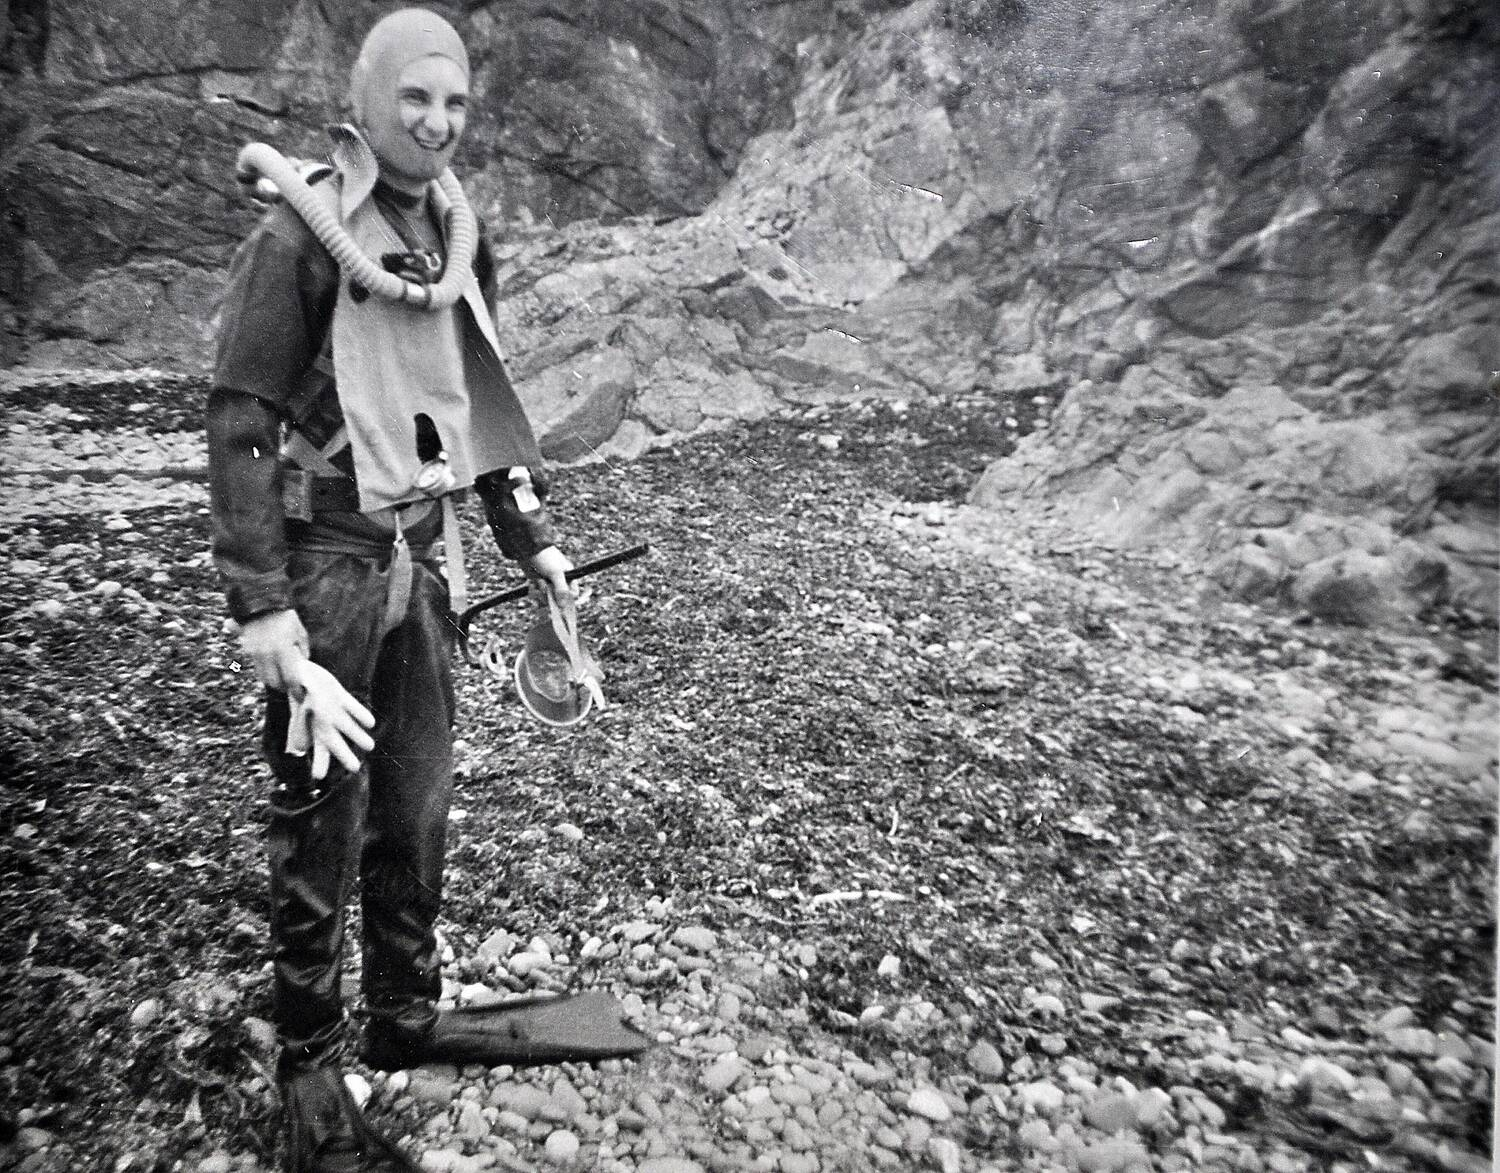 A black and white photo of a man in a diving suit with flippers, standing on a pebbly beach. A steep rock face can be seen in the background.